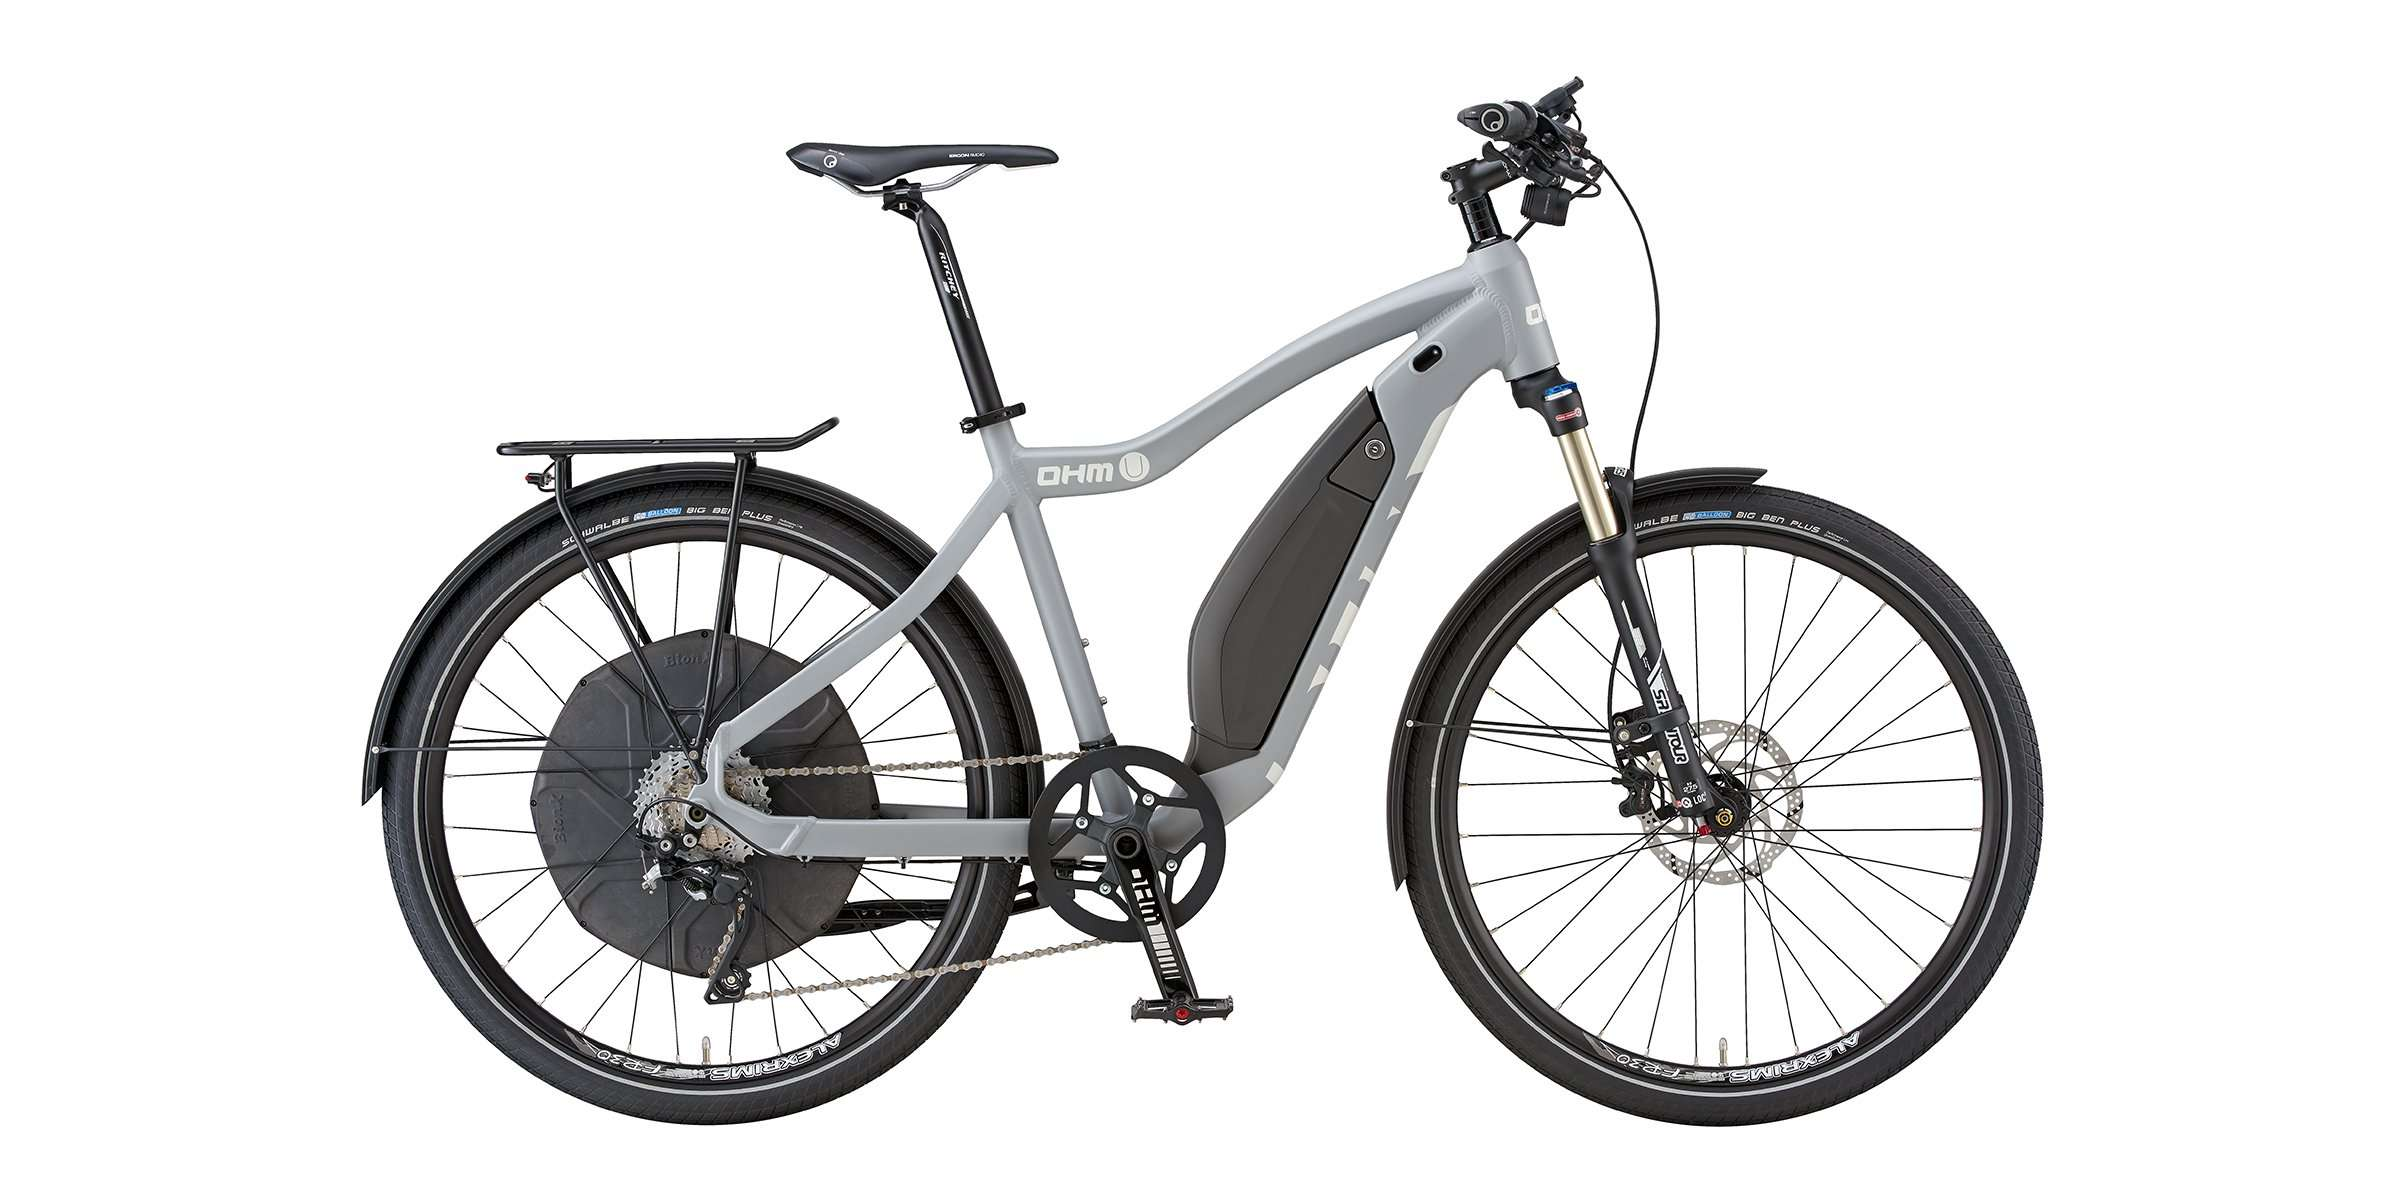 Ohm Urban E Bike